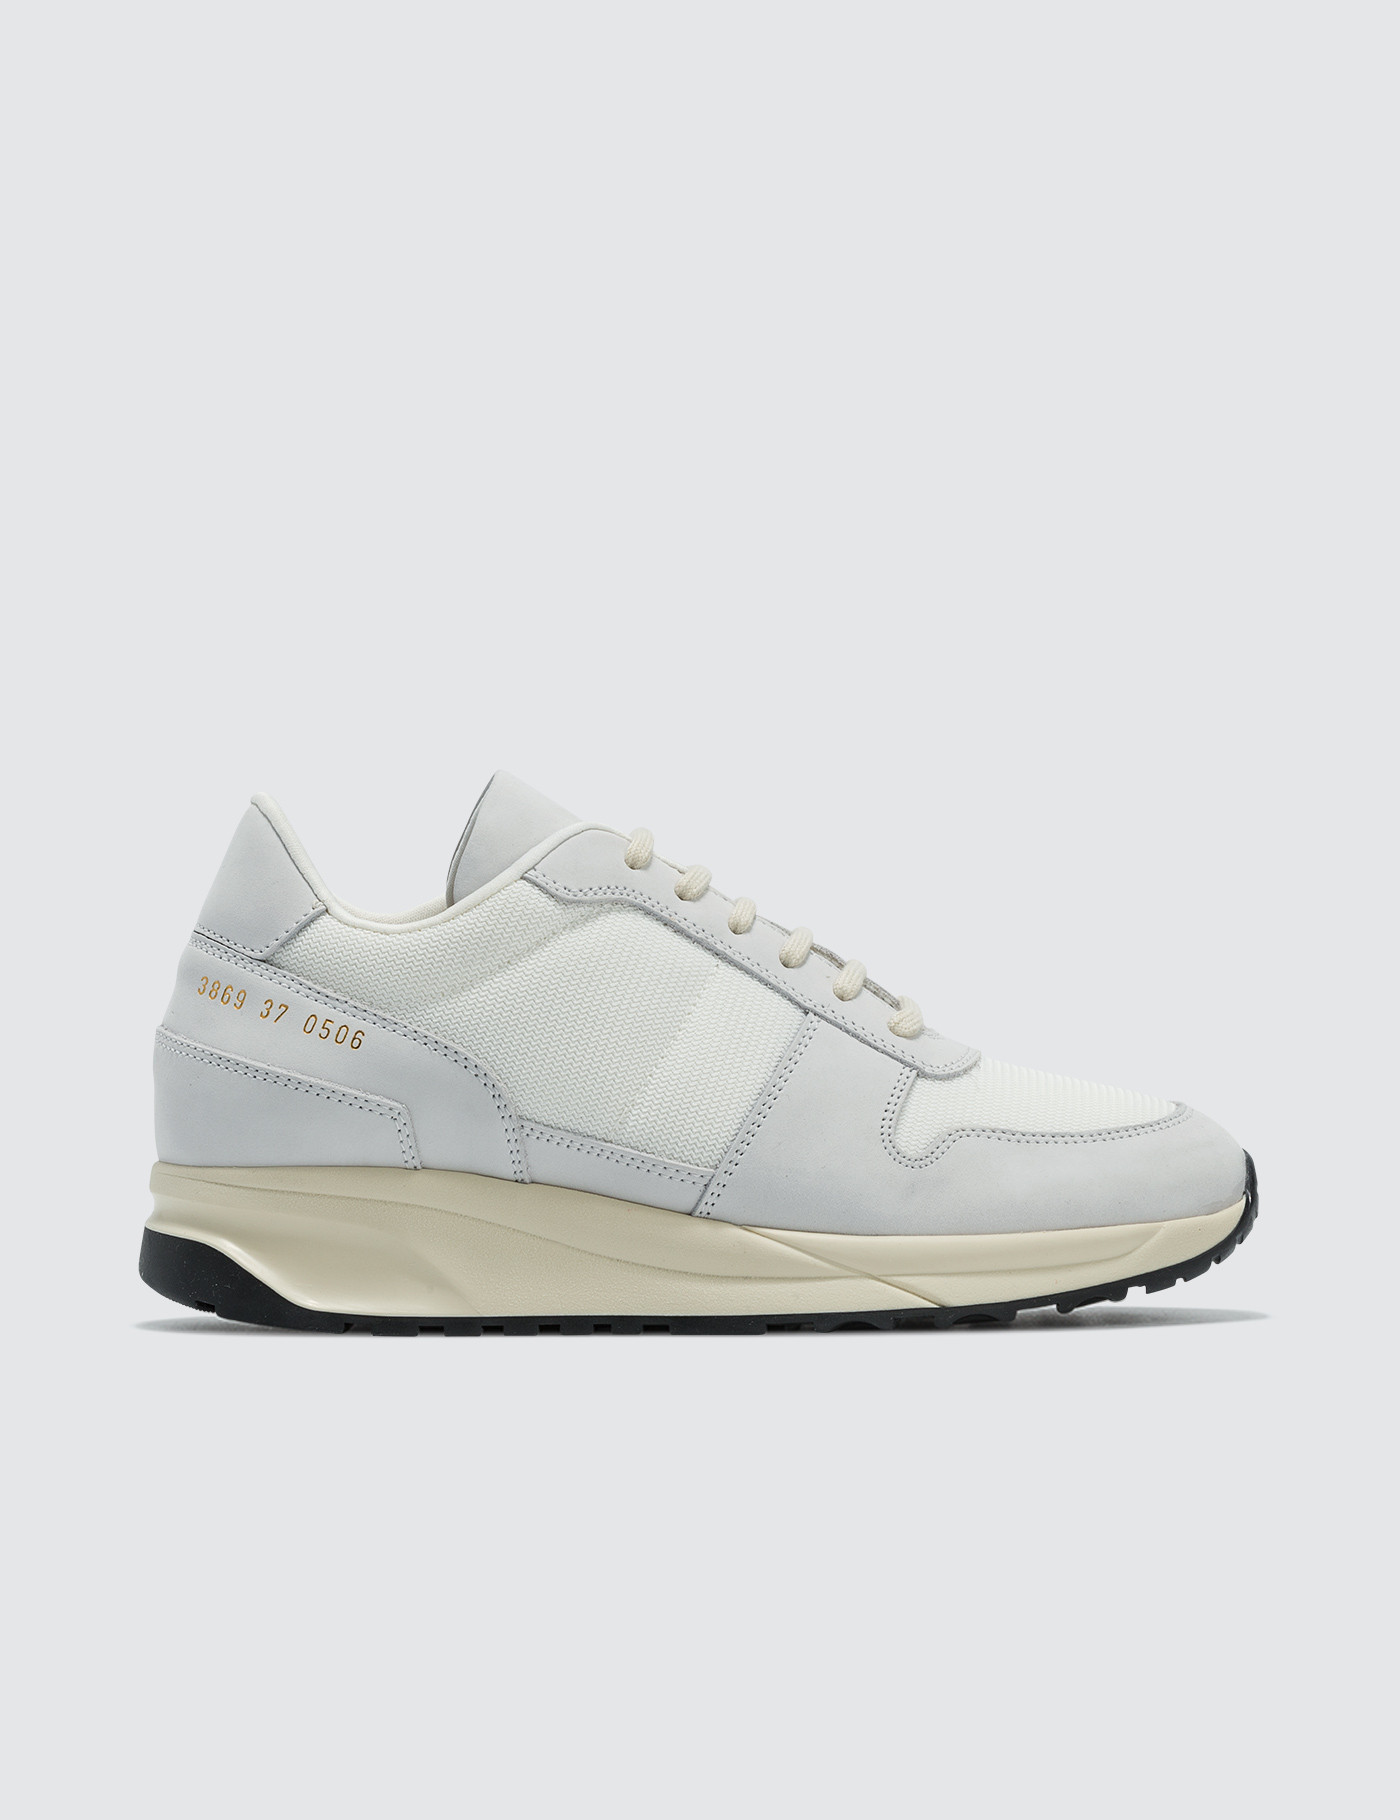 Common Projects - Track Vintage | HBX